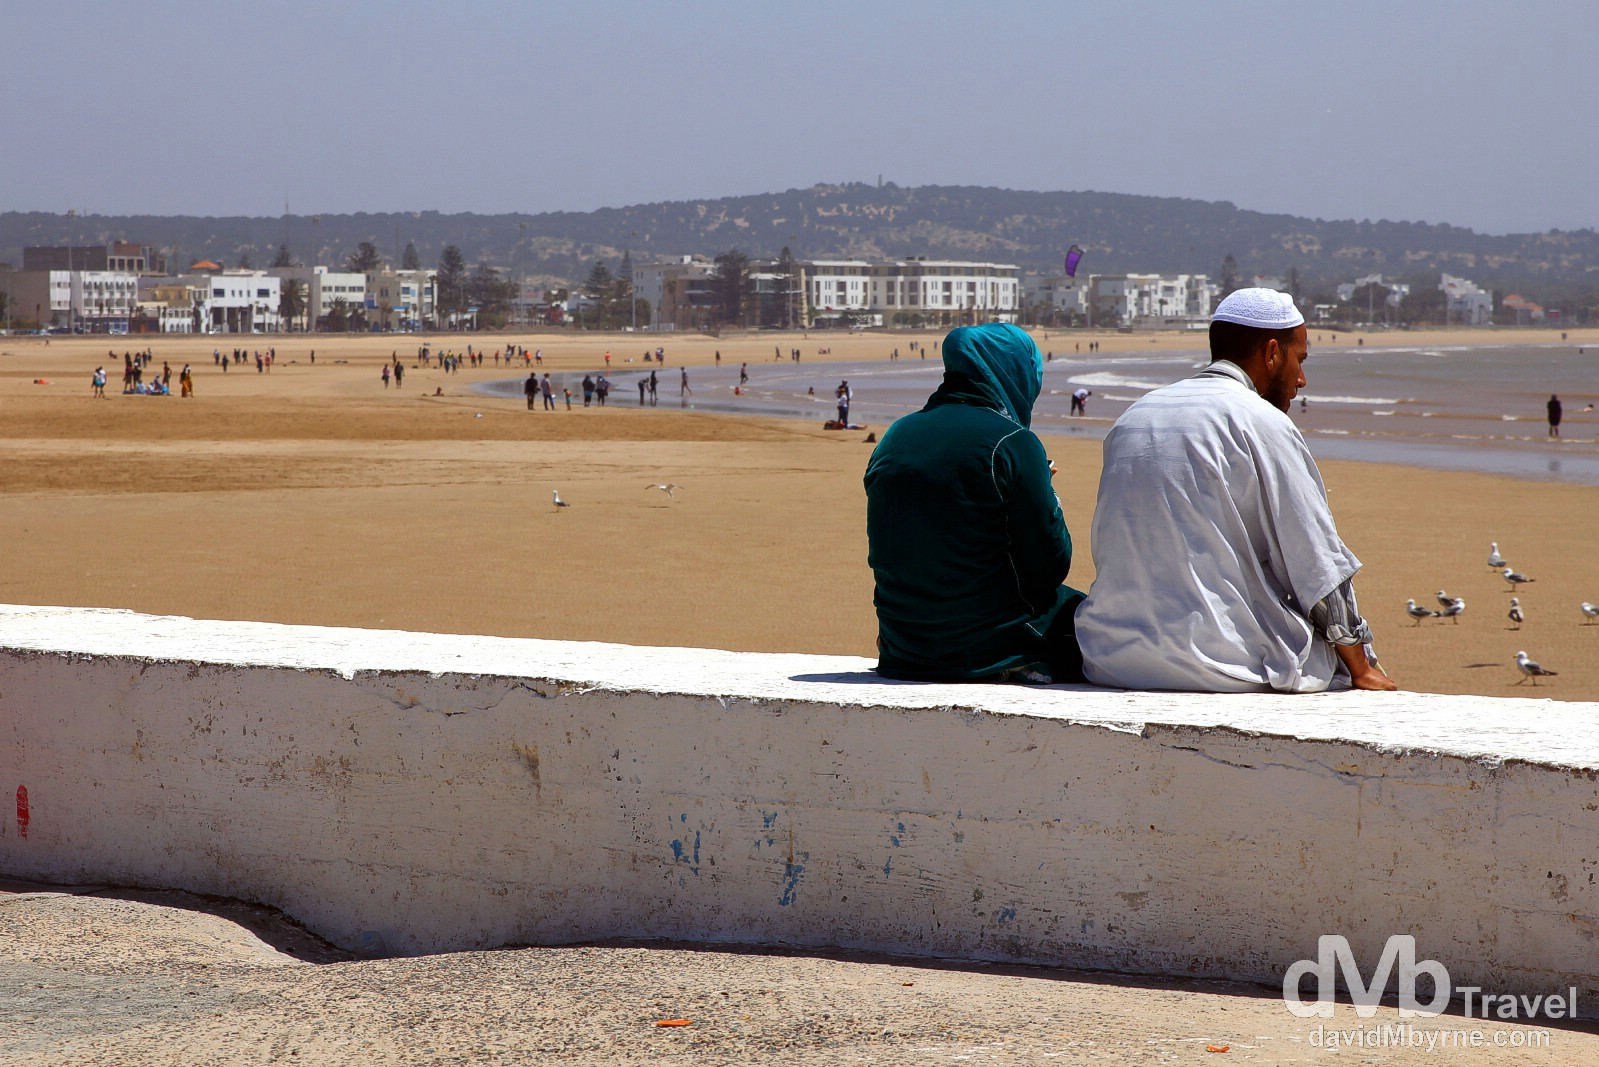 Overlooking the beach in Essaouira, Morocco. May 3rd, 2014.